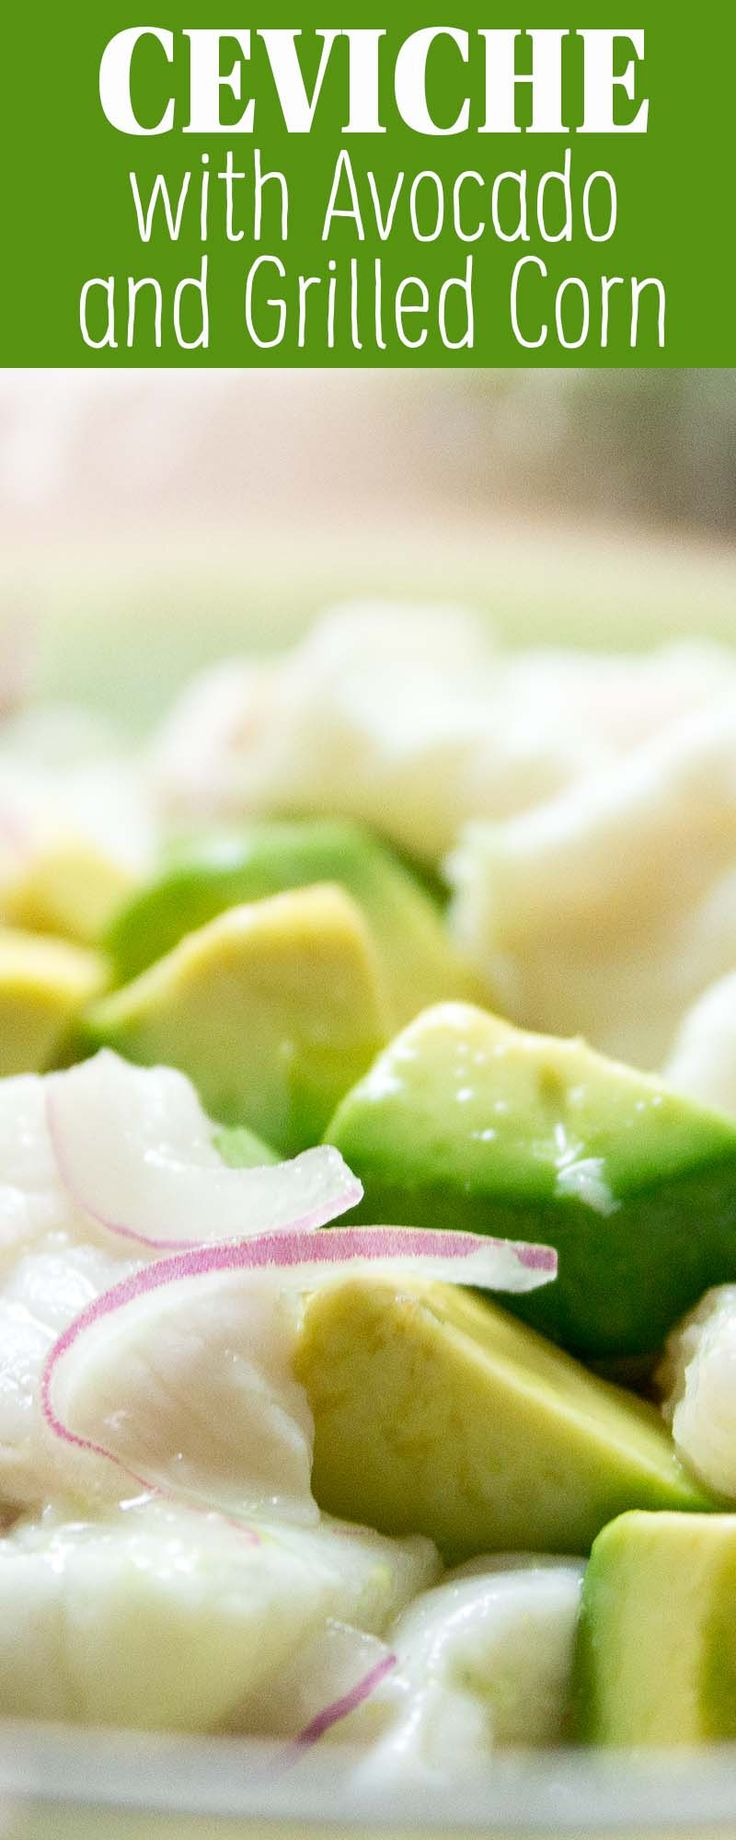 Ceviche with Avocado and Grilled Corn! White fish is